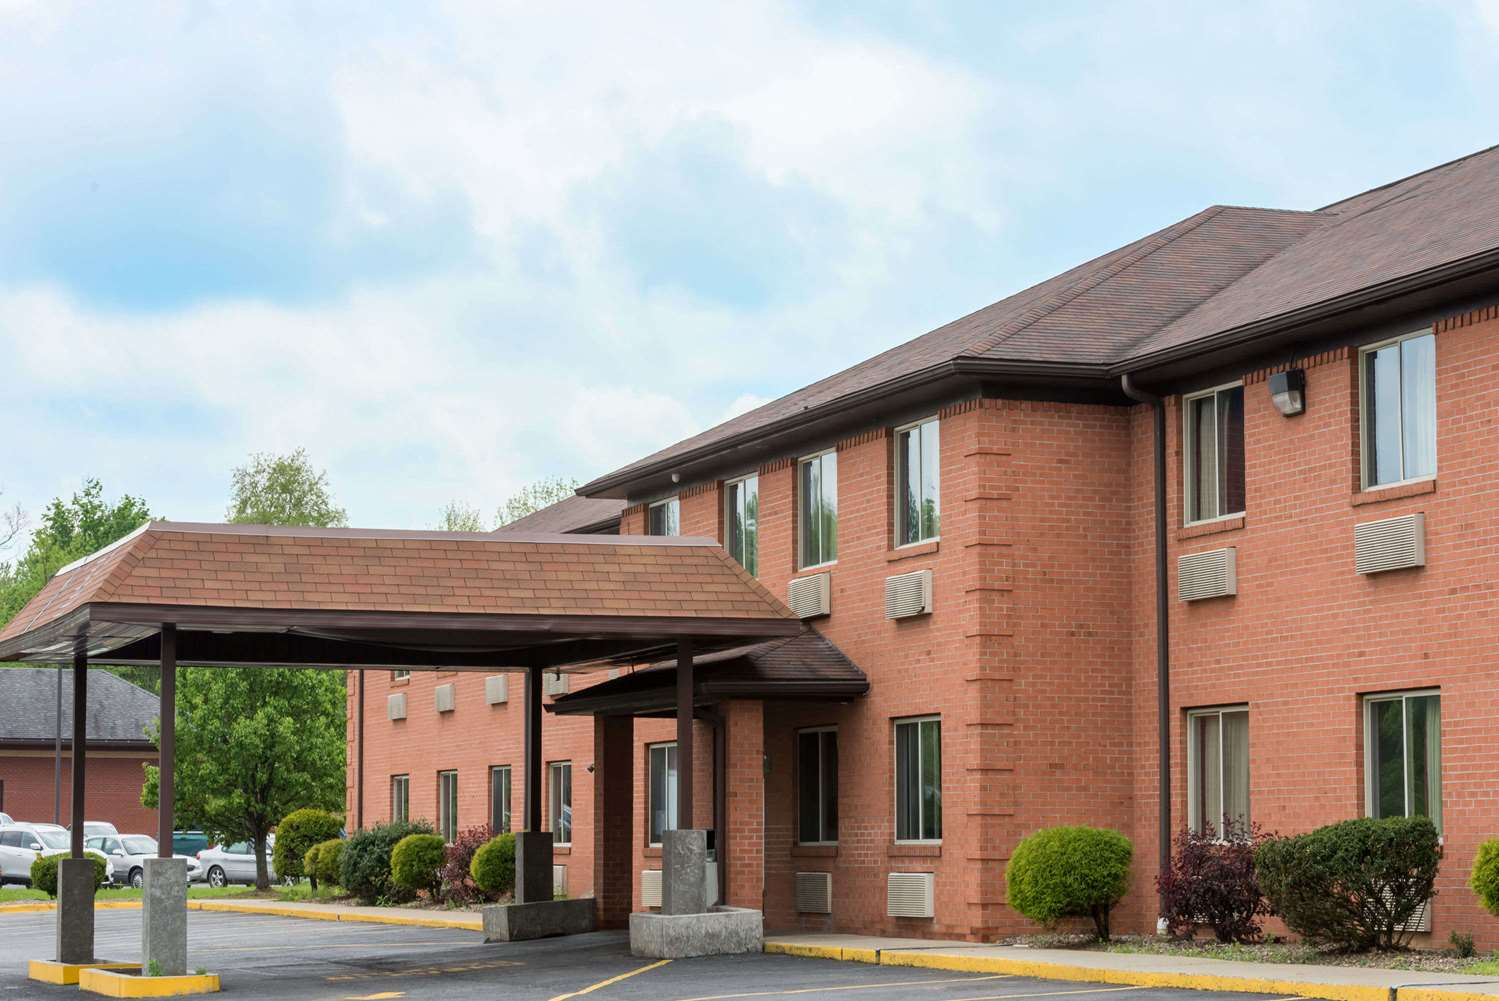 Hotels Near Fairmont State University Wv